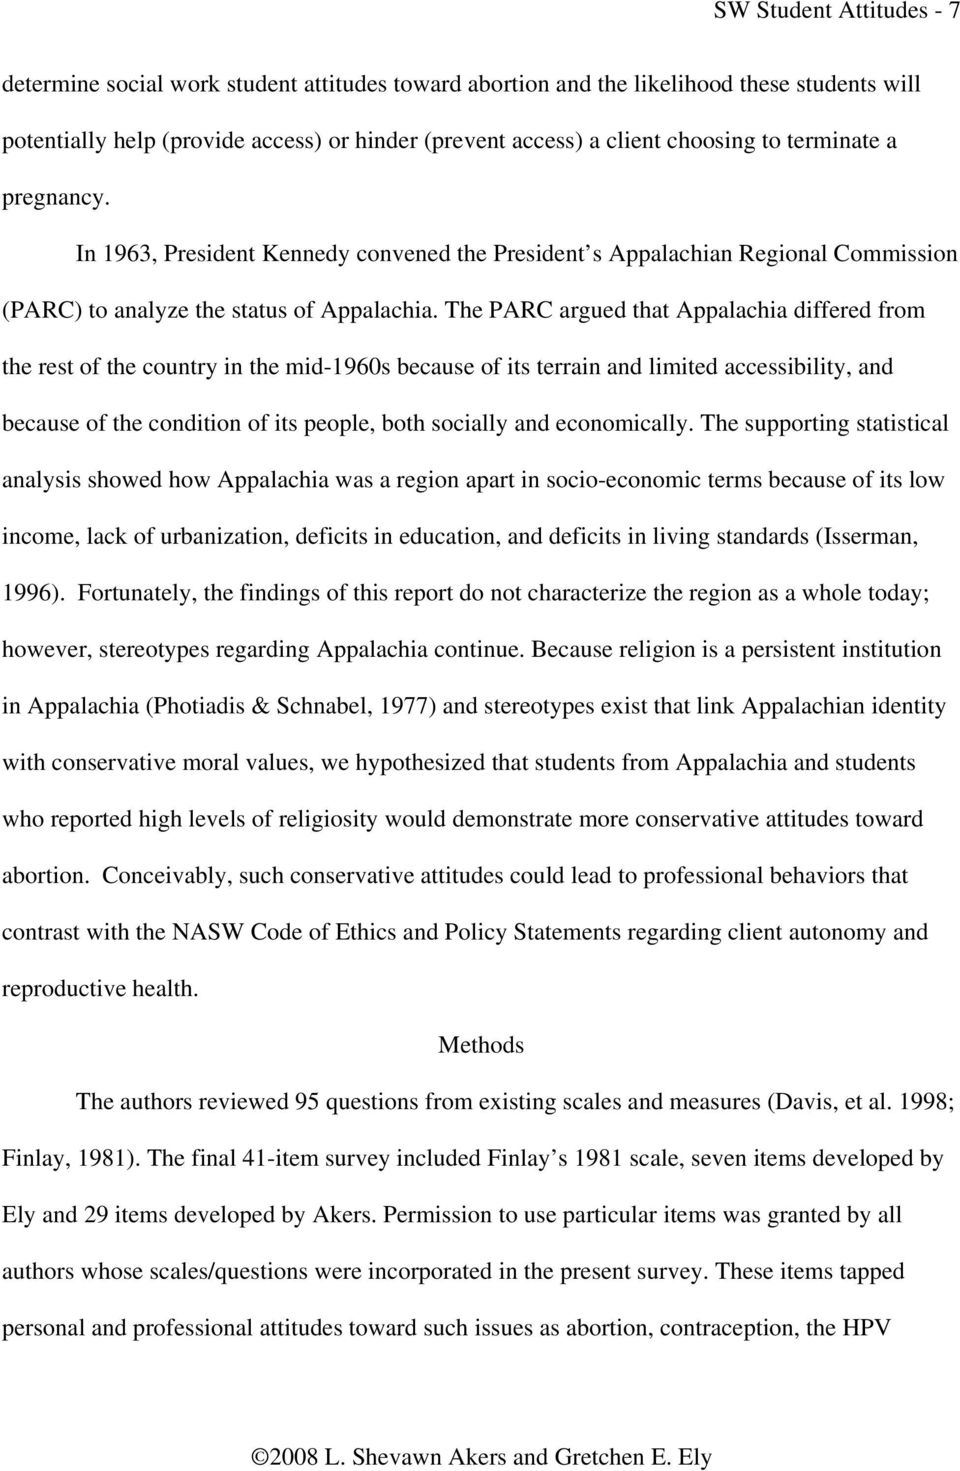 The PARC argued that Appalachia differed from the rest of the country in the mid-1960s because of its terrain and limited accessibility, and because of the condition of its people, both socially and